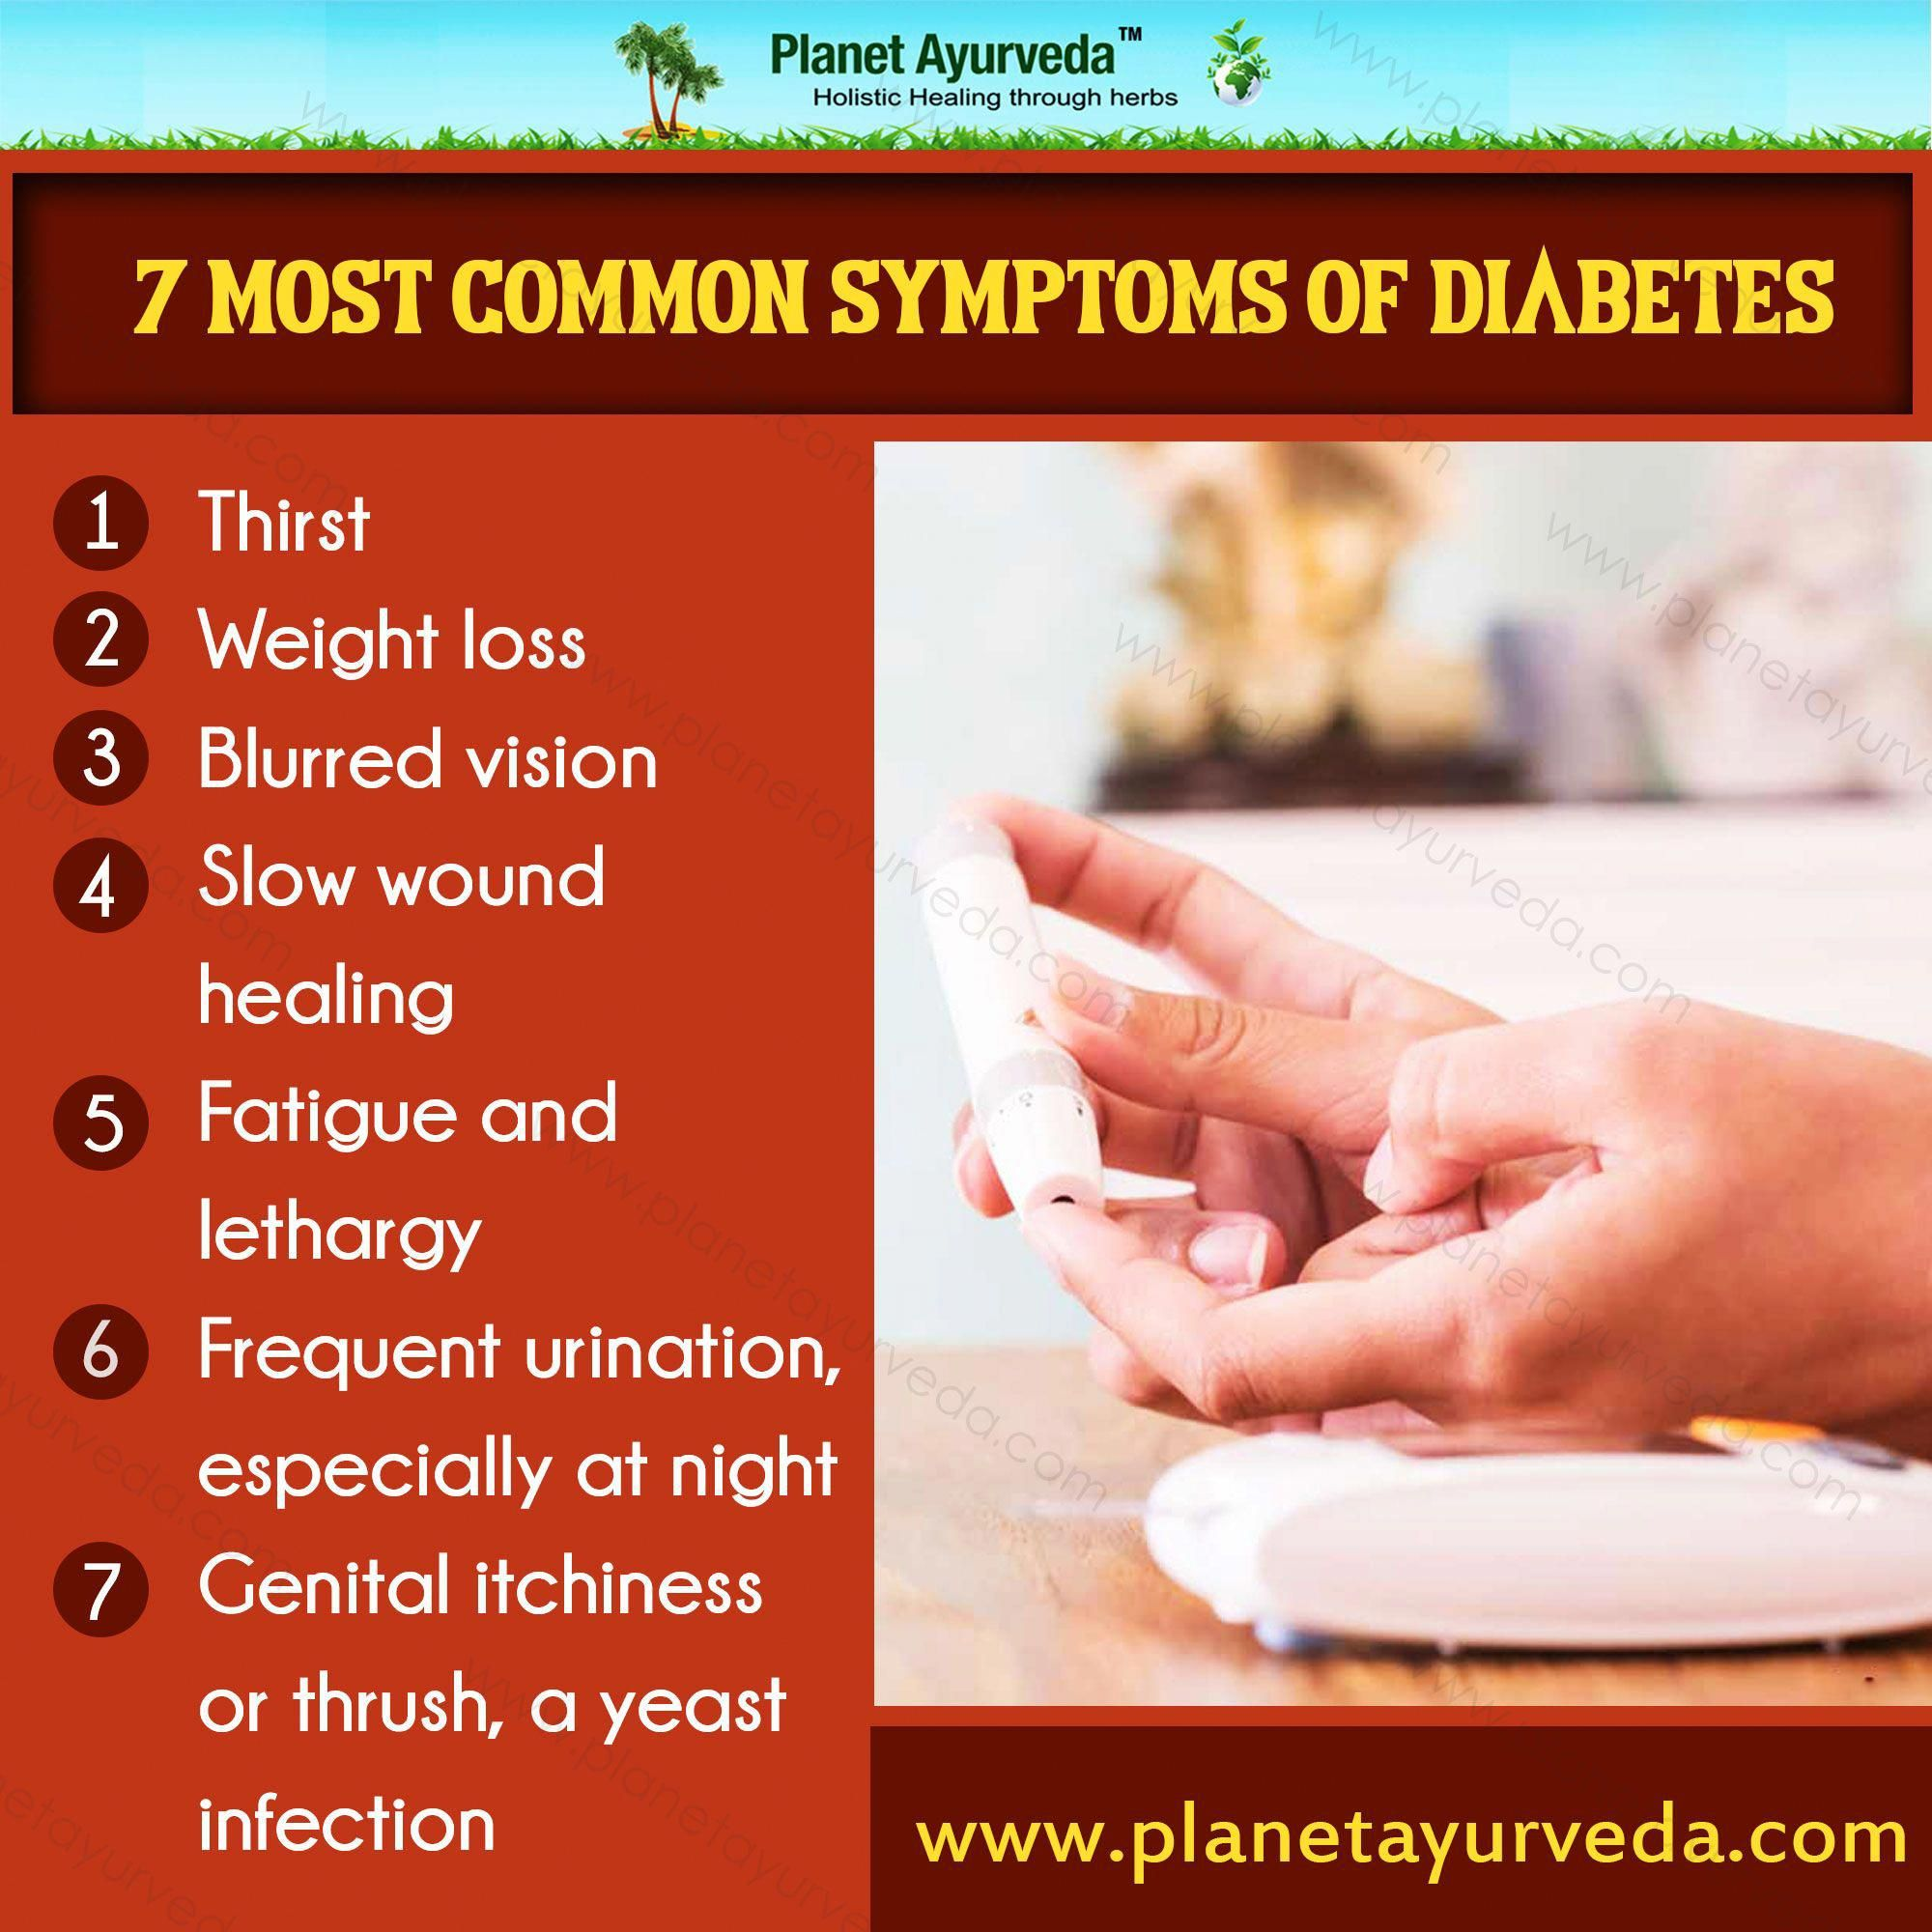 So What Exactly Is Diabetes According To The Ayurveda If You